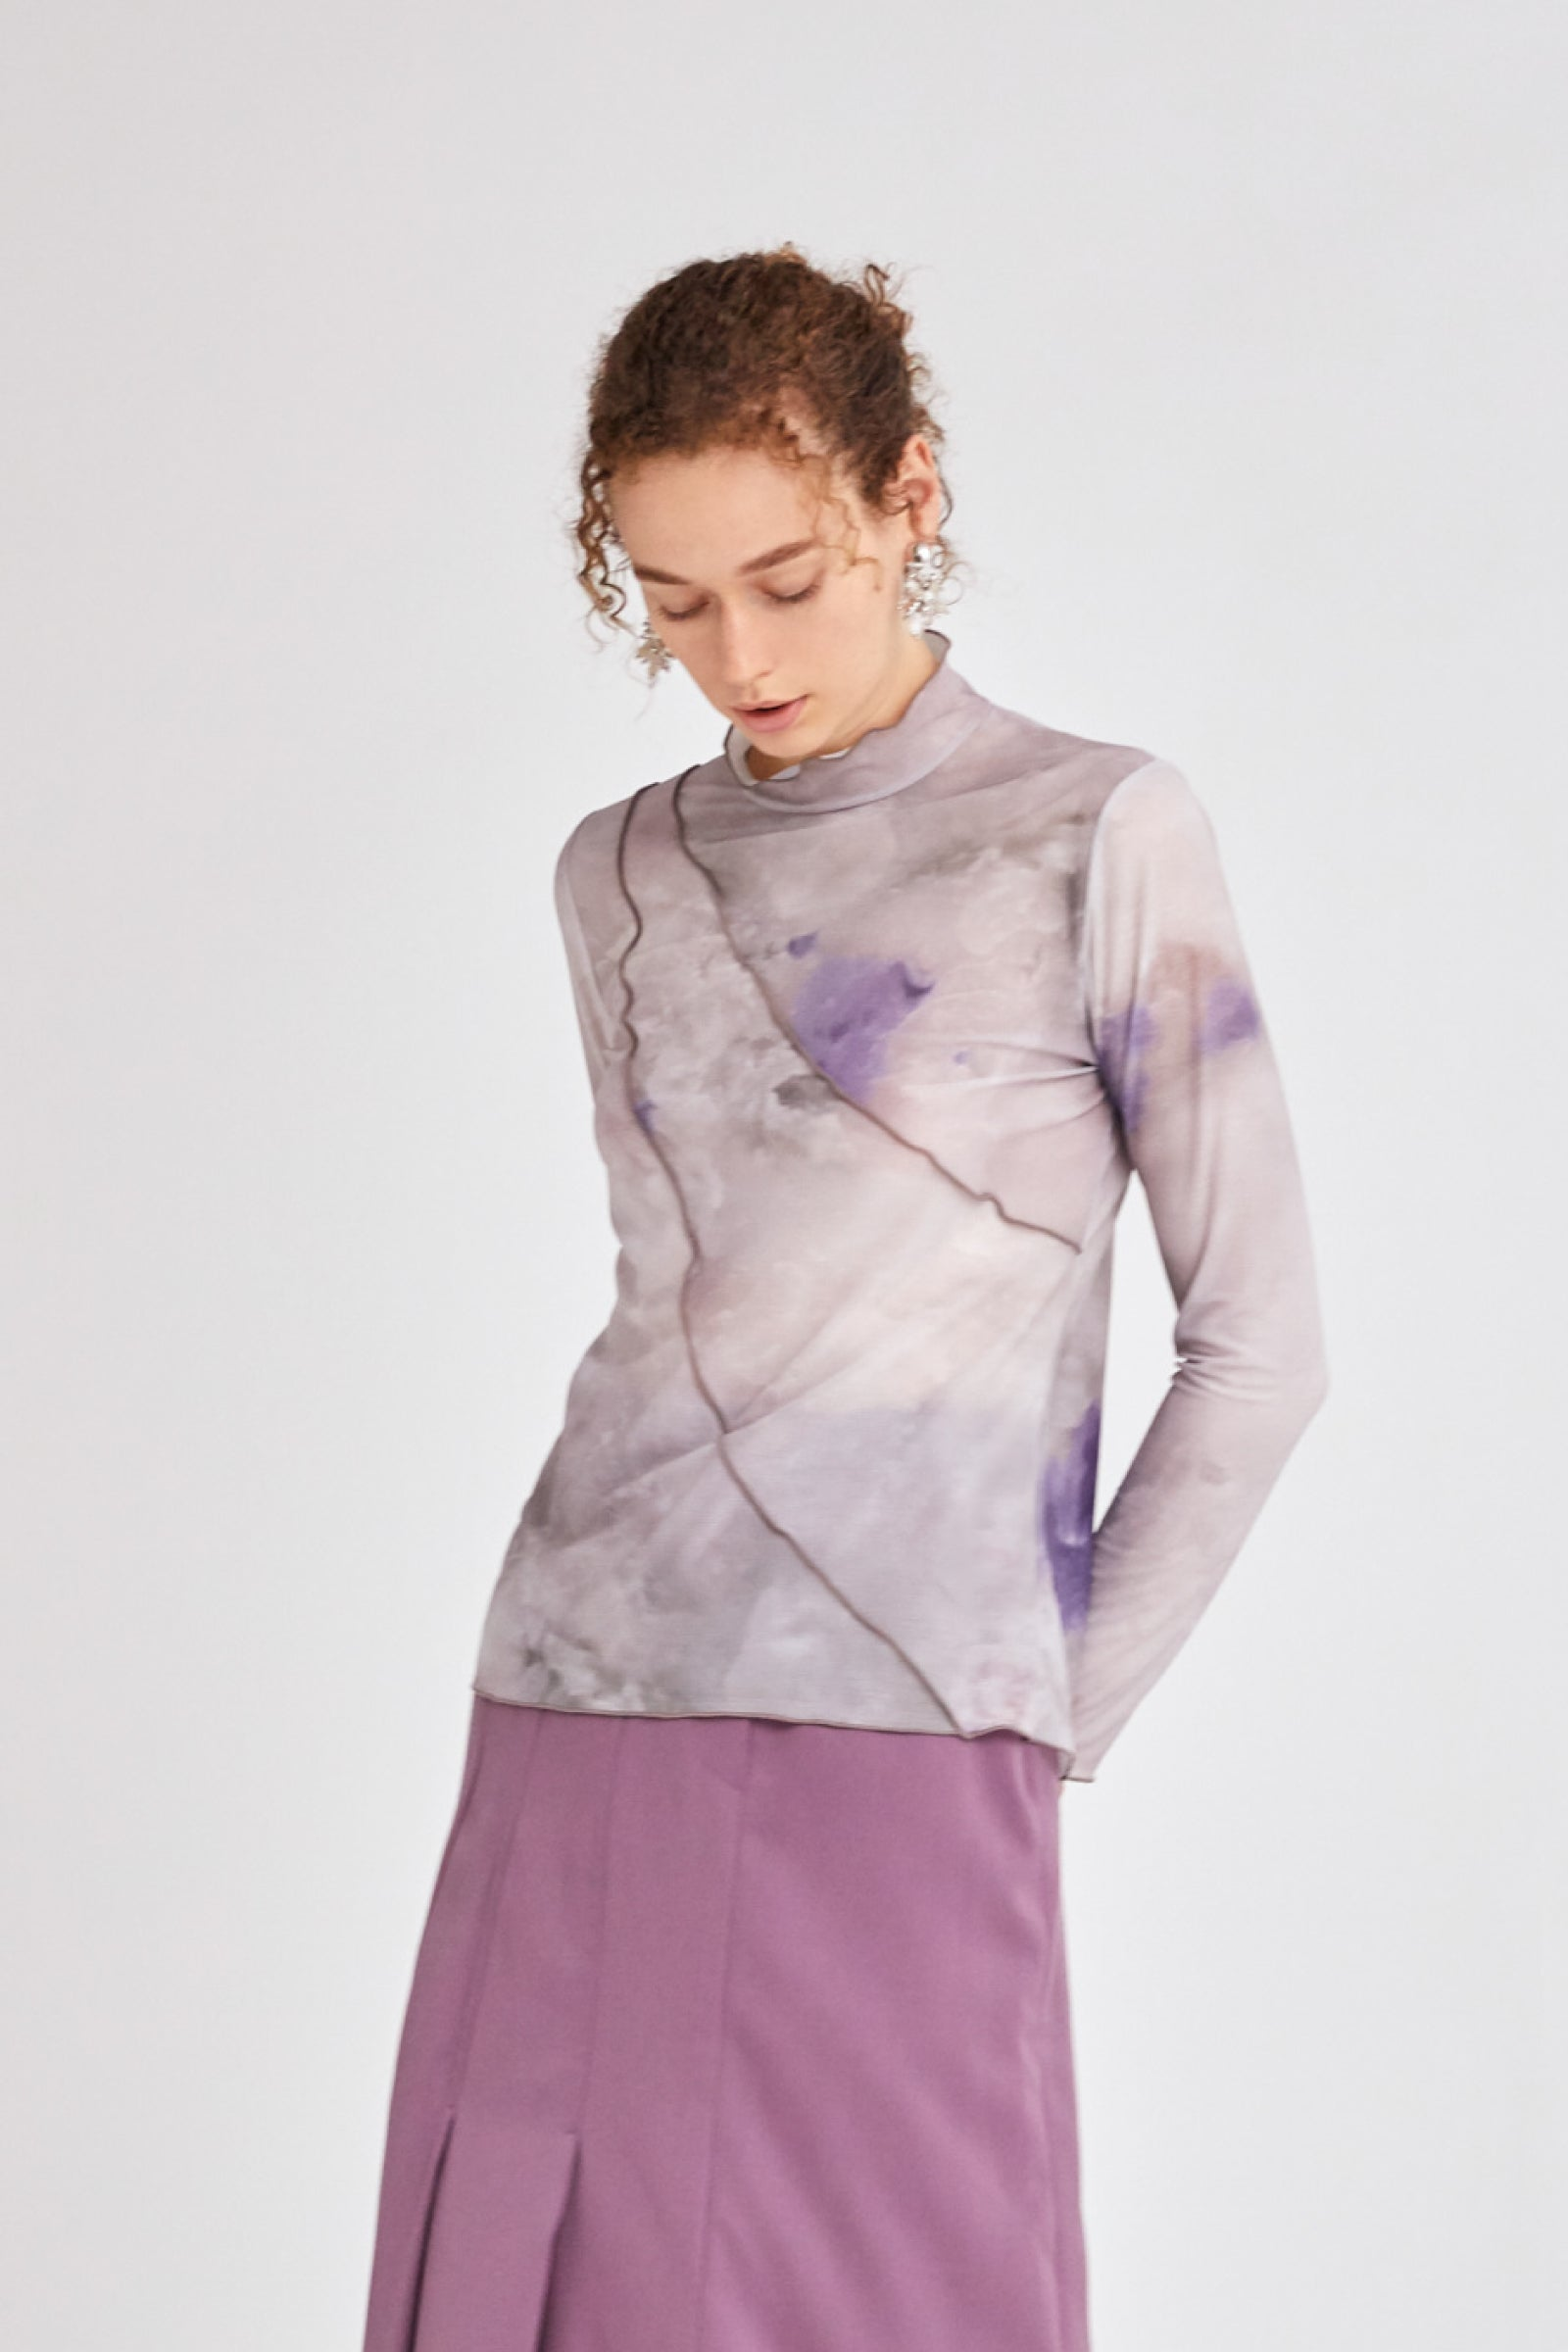 MURRAL candle print sheer top (purple)